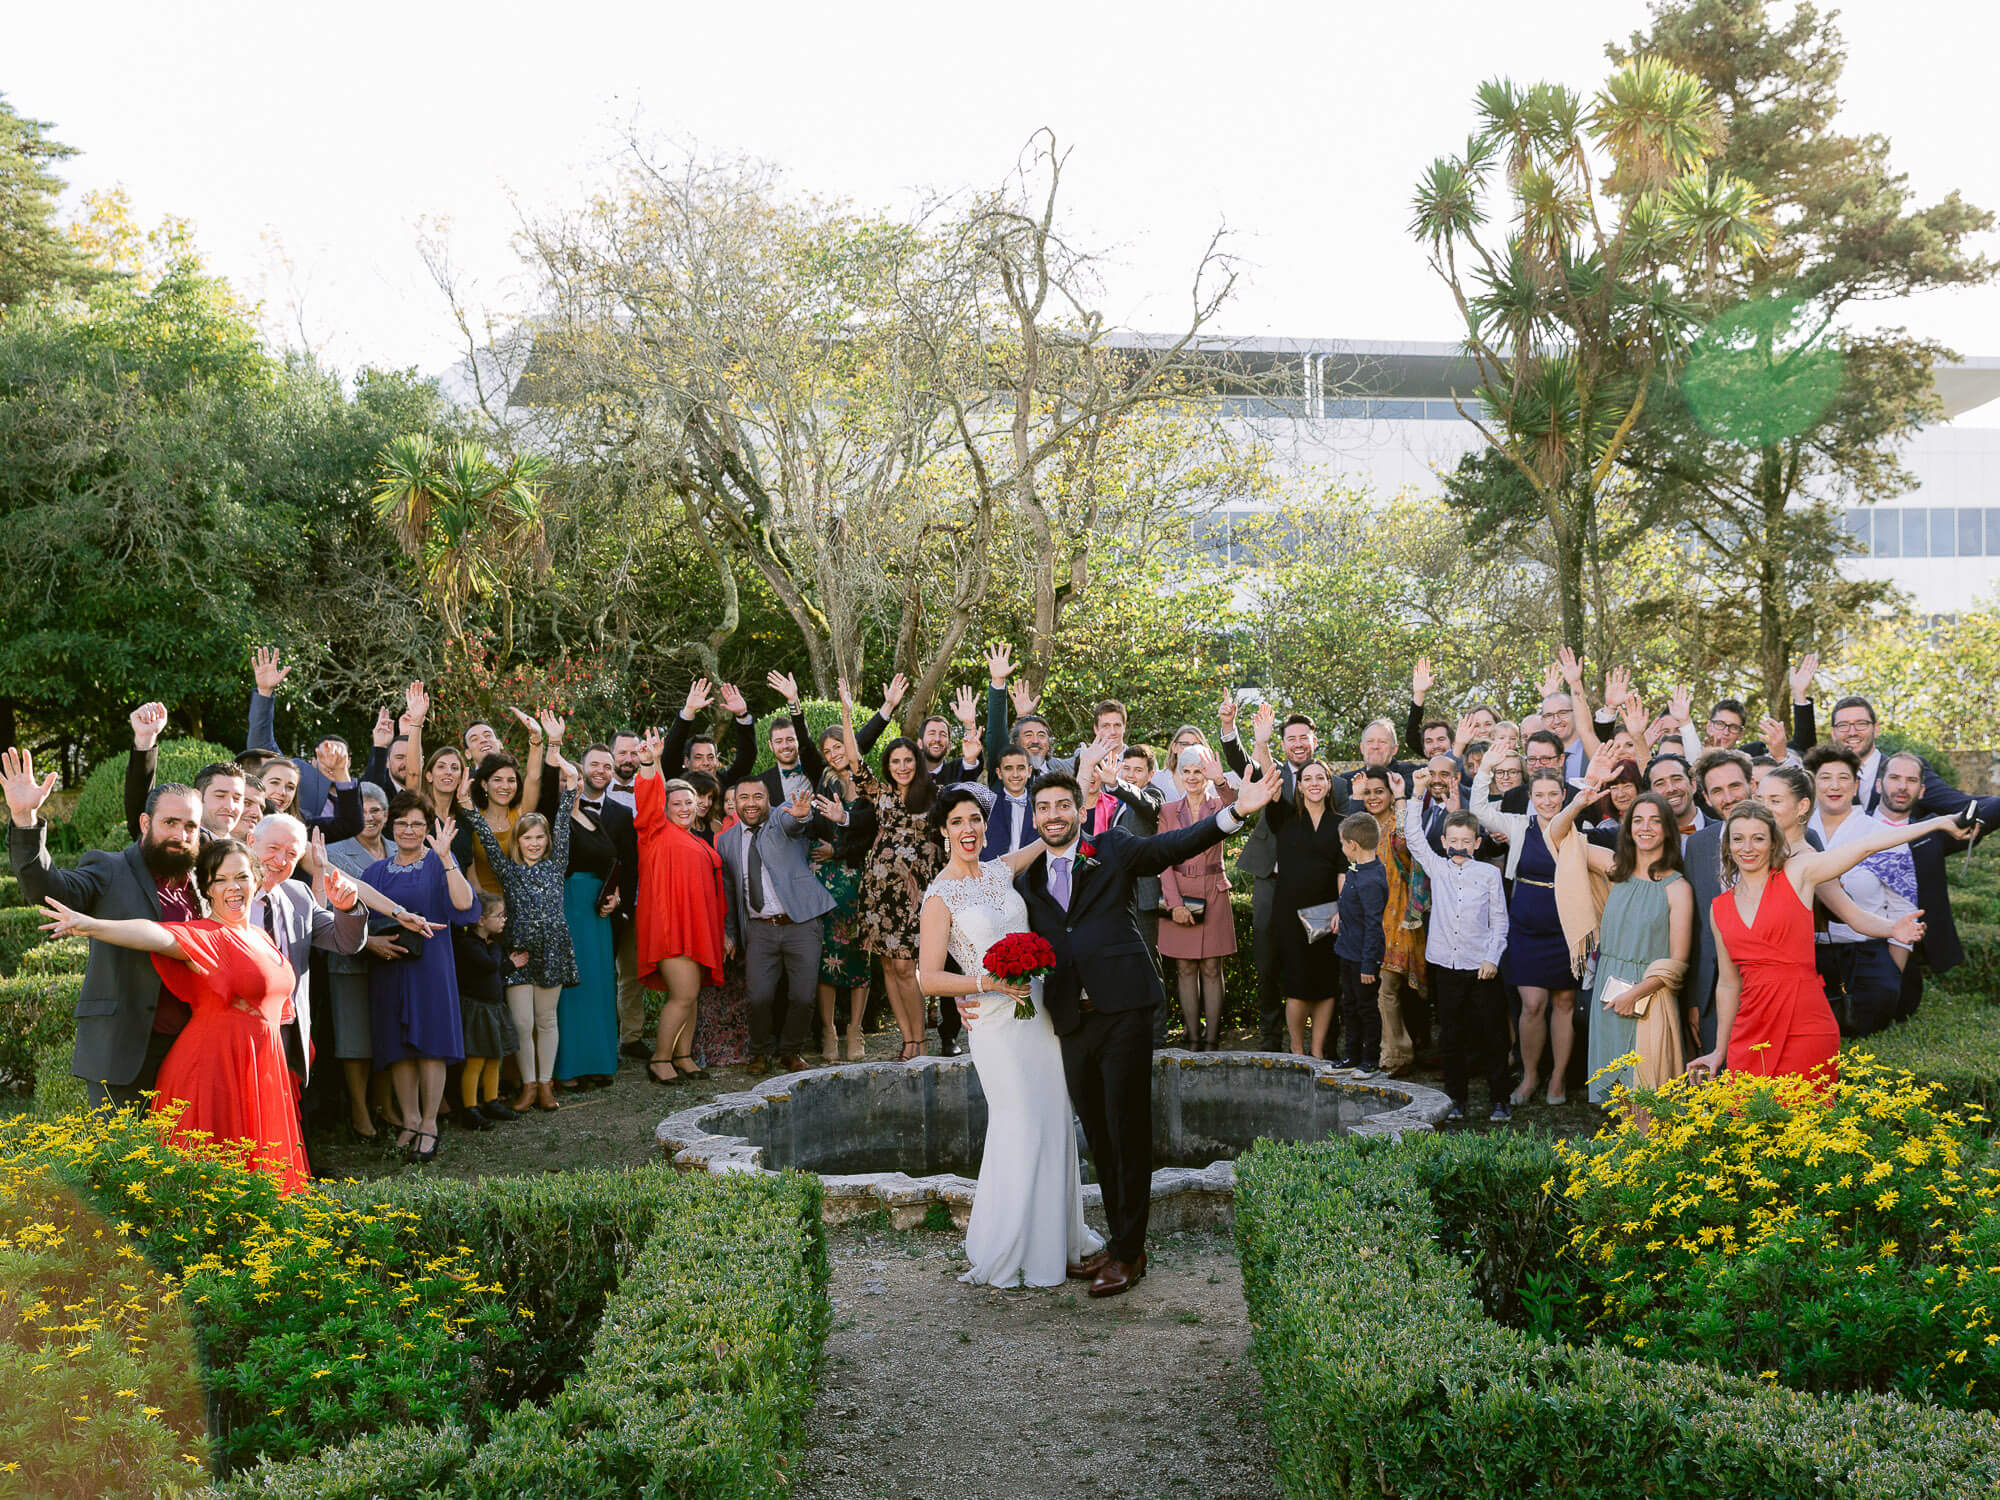 cheering wedding group portrait after wedding ceremony by Portugal Wedding Photographer